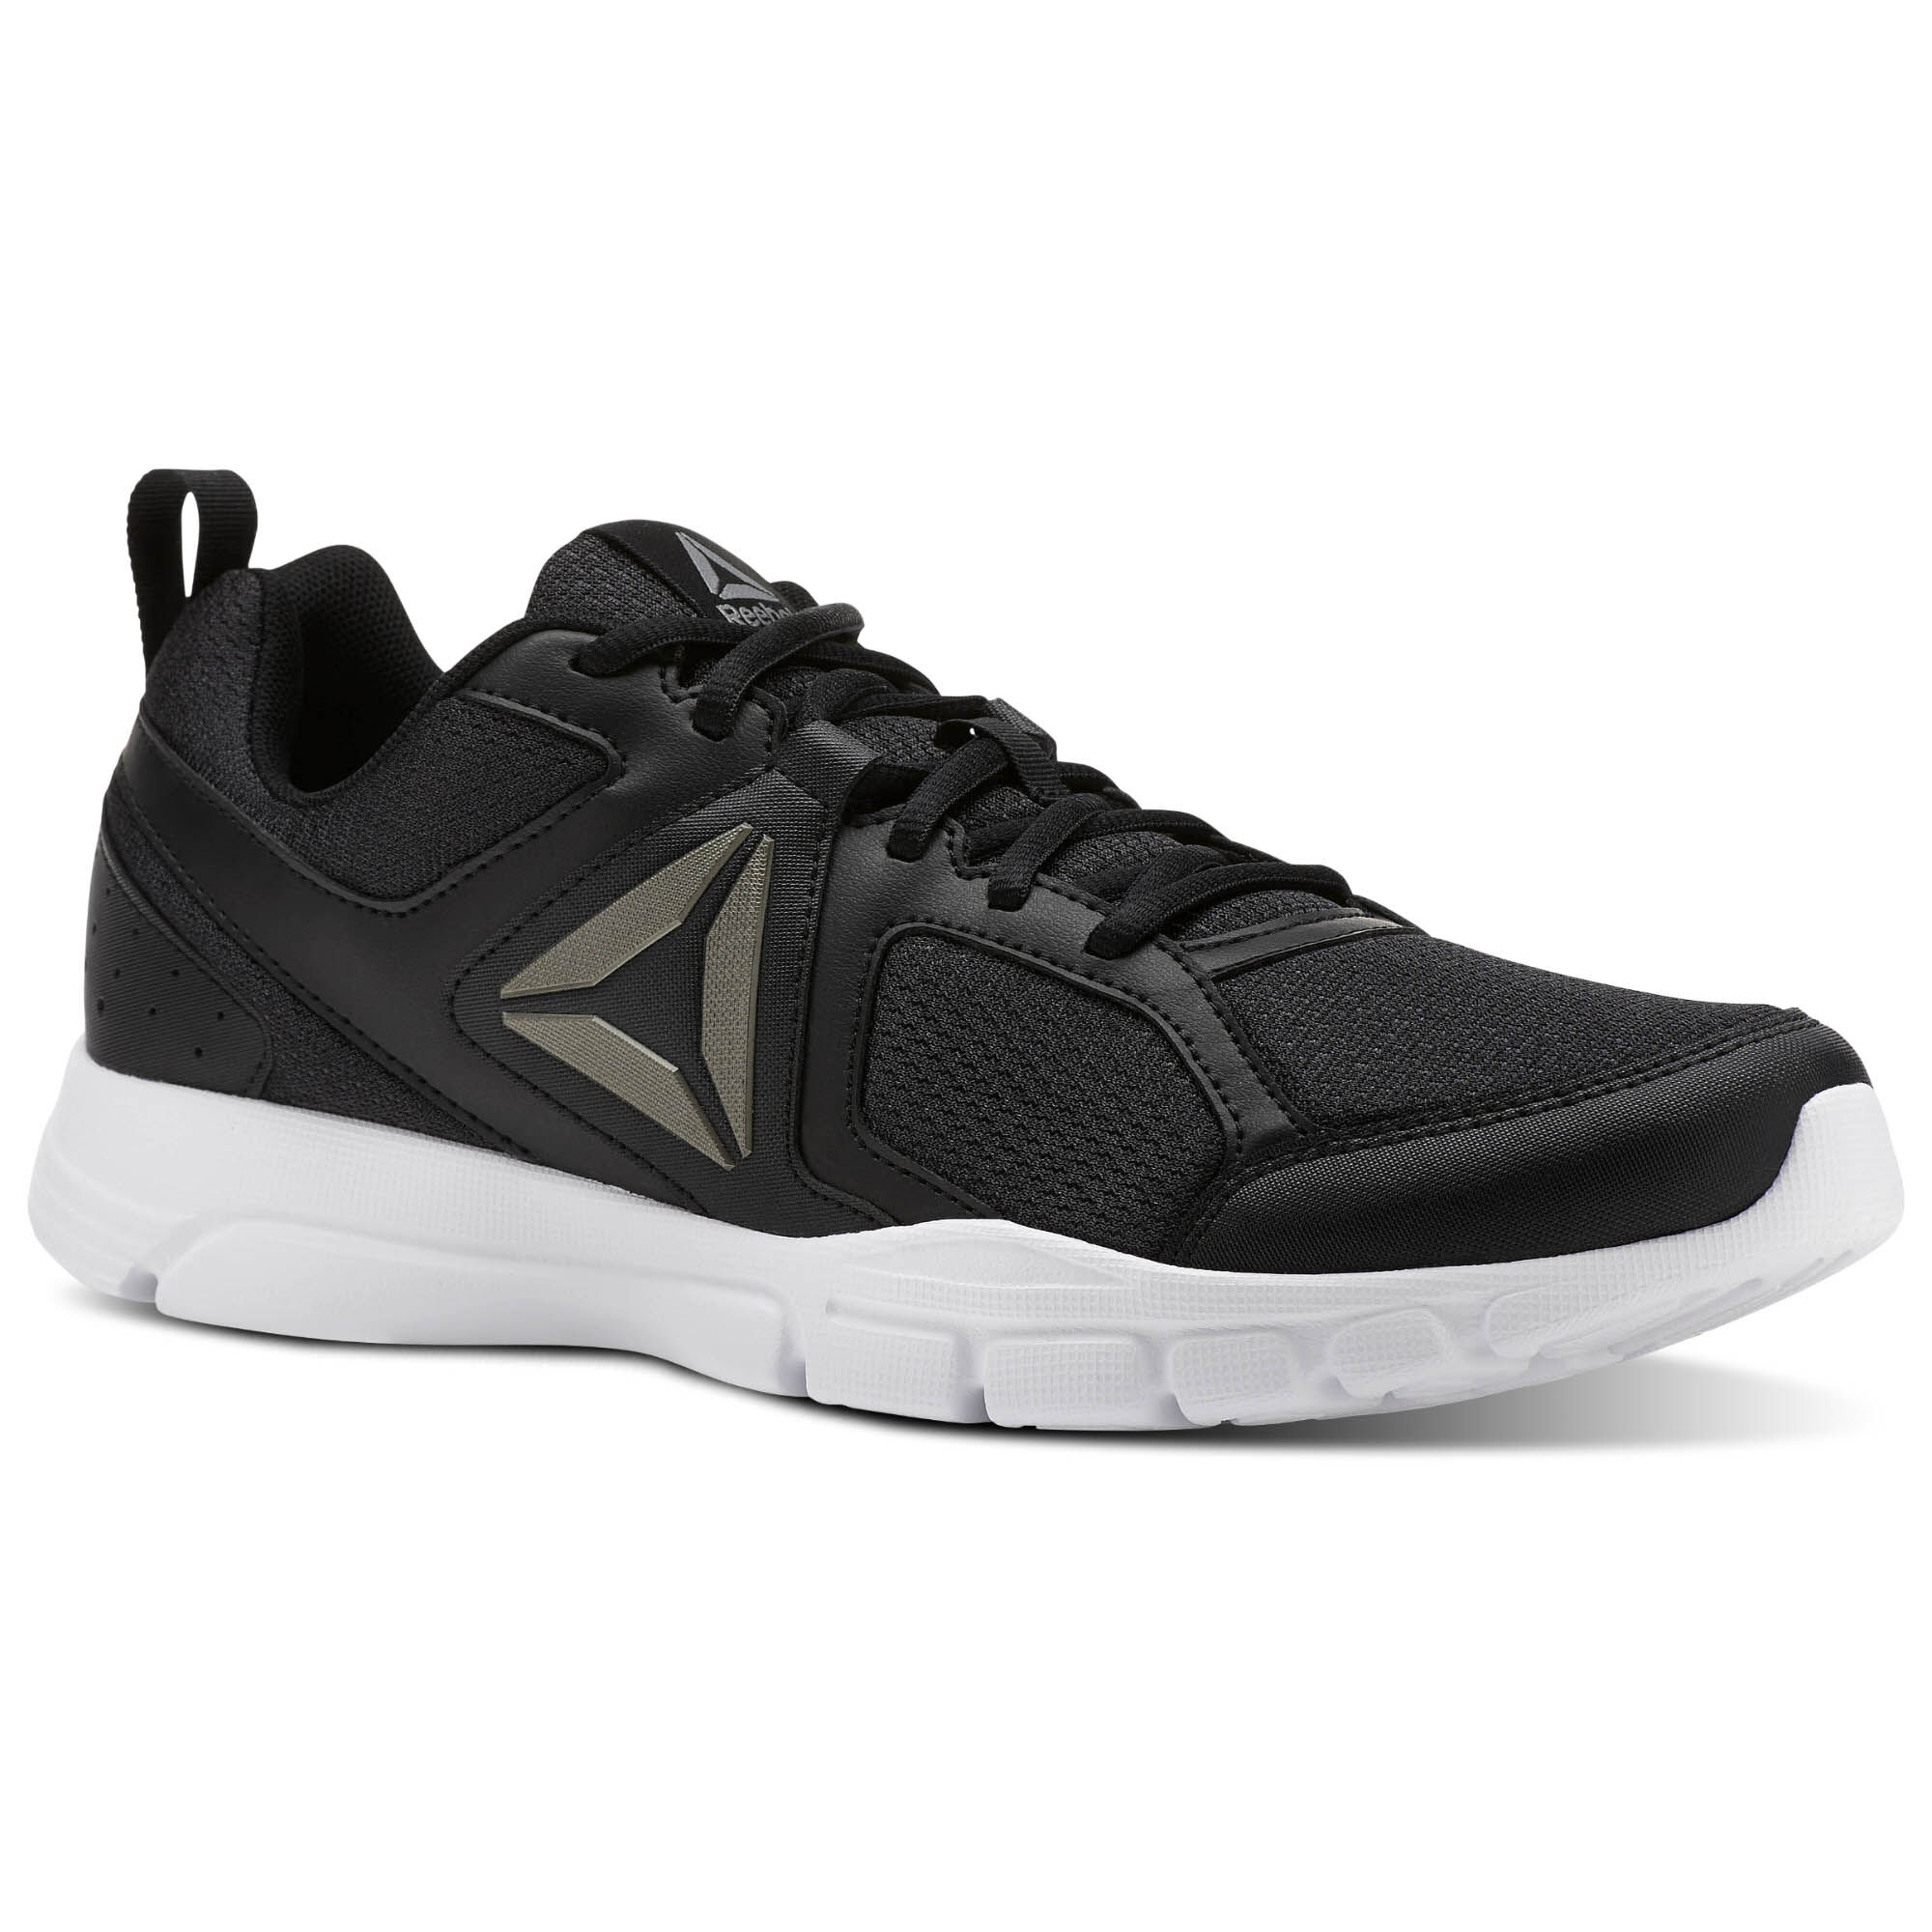 Reebok 3D FUSION TR - Stabilty running shoes - Black/White/Pewter 6AiDaImbe